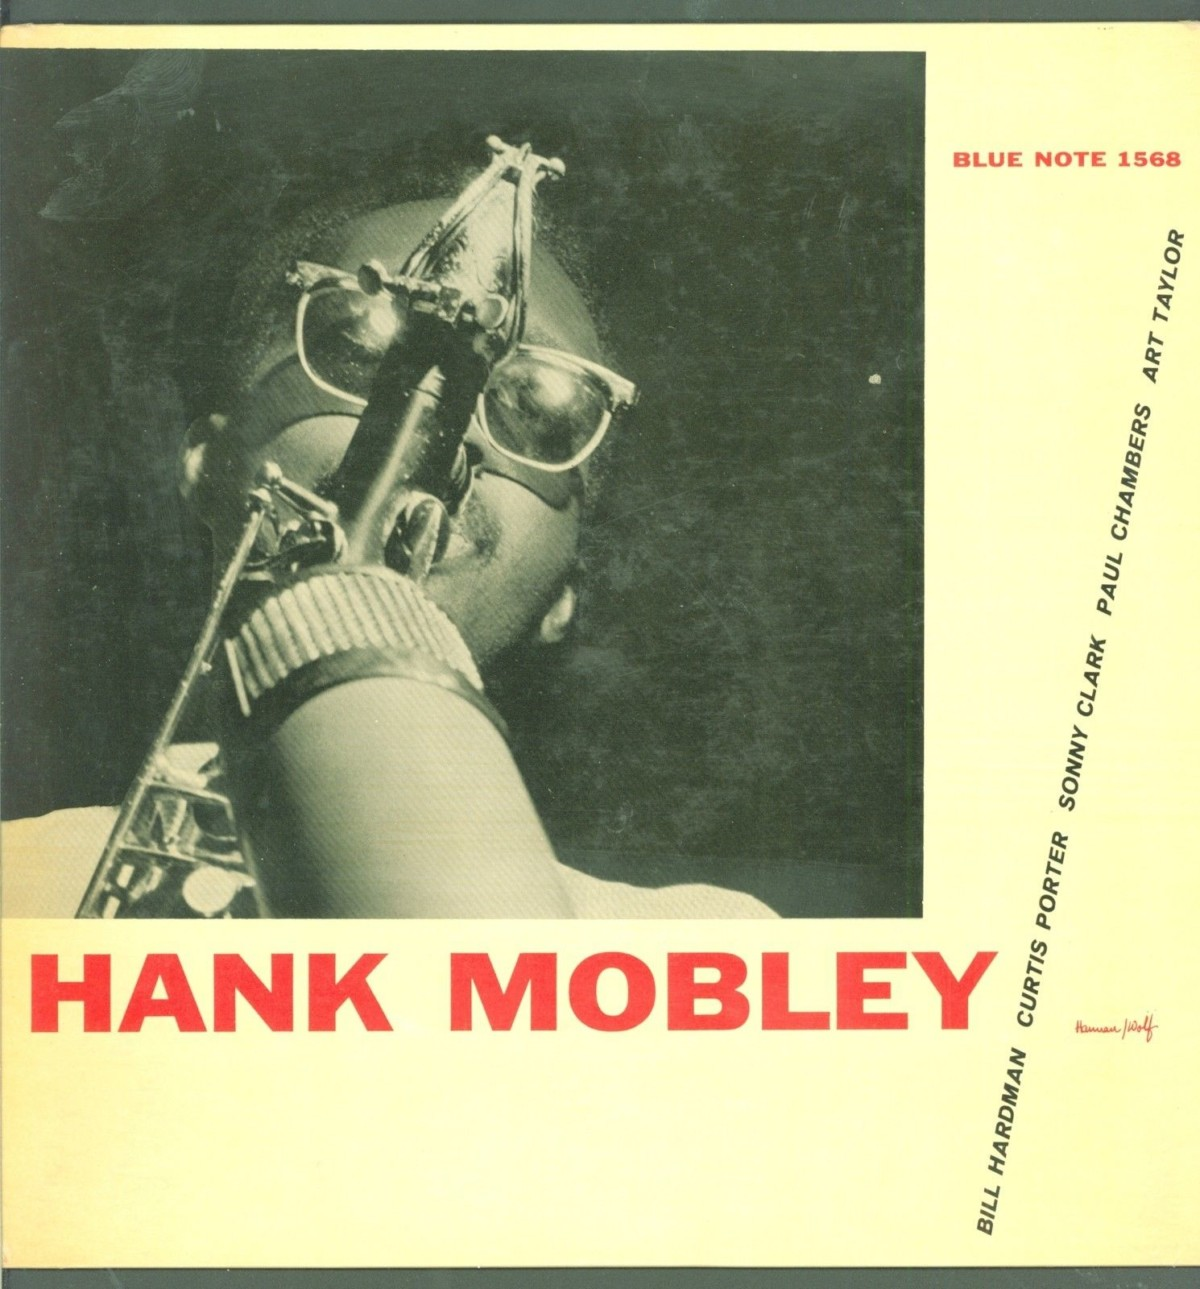 Mobley Blue Note 1568: And the winner is .